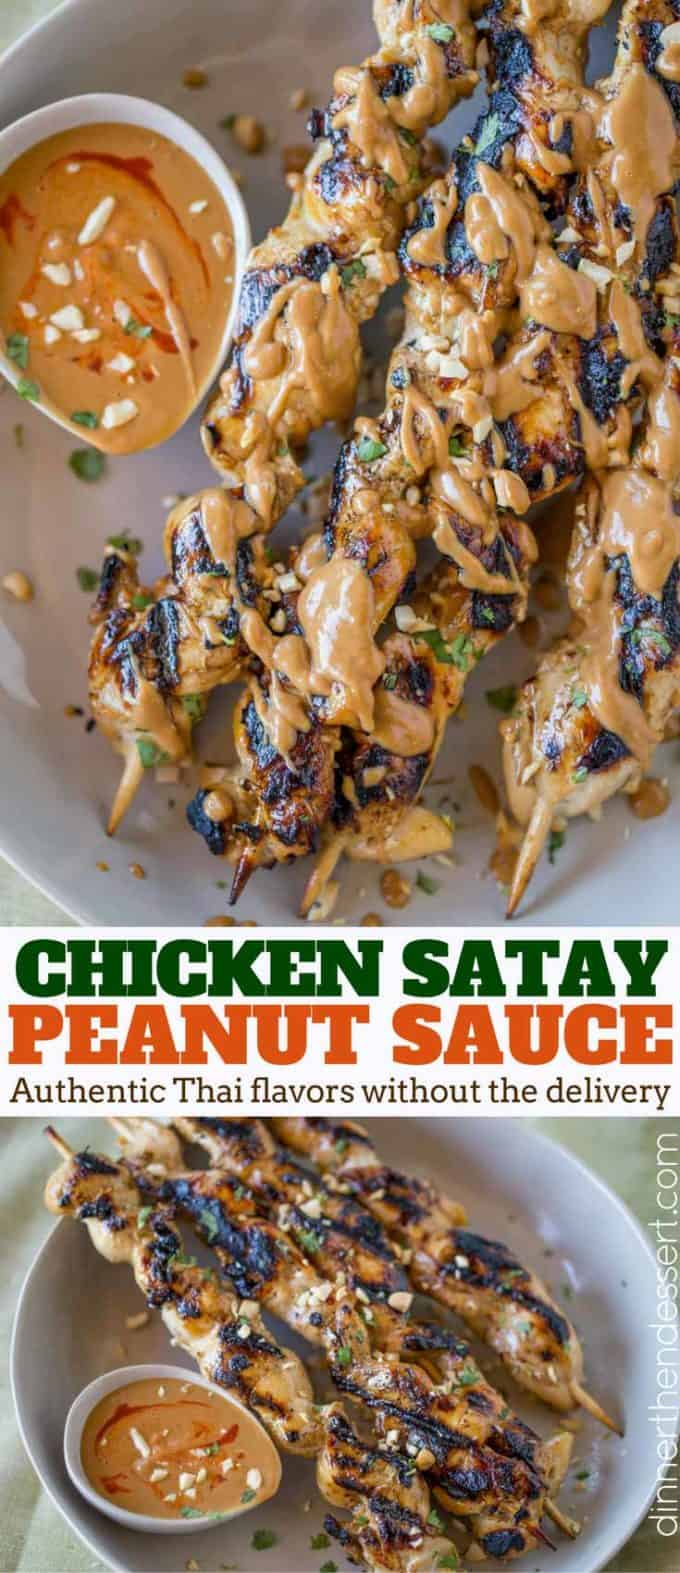 Chicken Satay skewers with the easiest peanut sauce is both authentic and approachable for kids too! So delicious you'll skip the Thai food delivery!